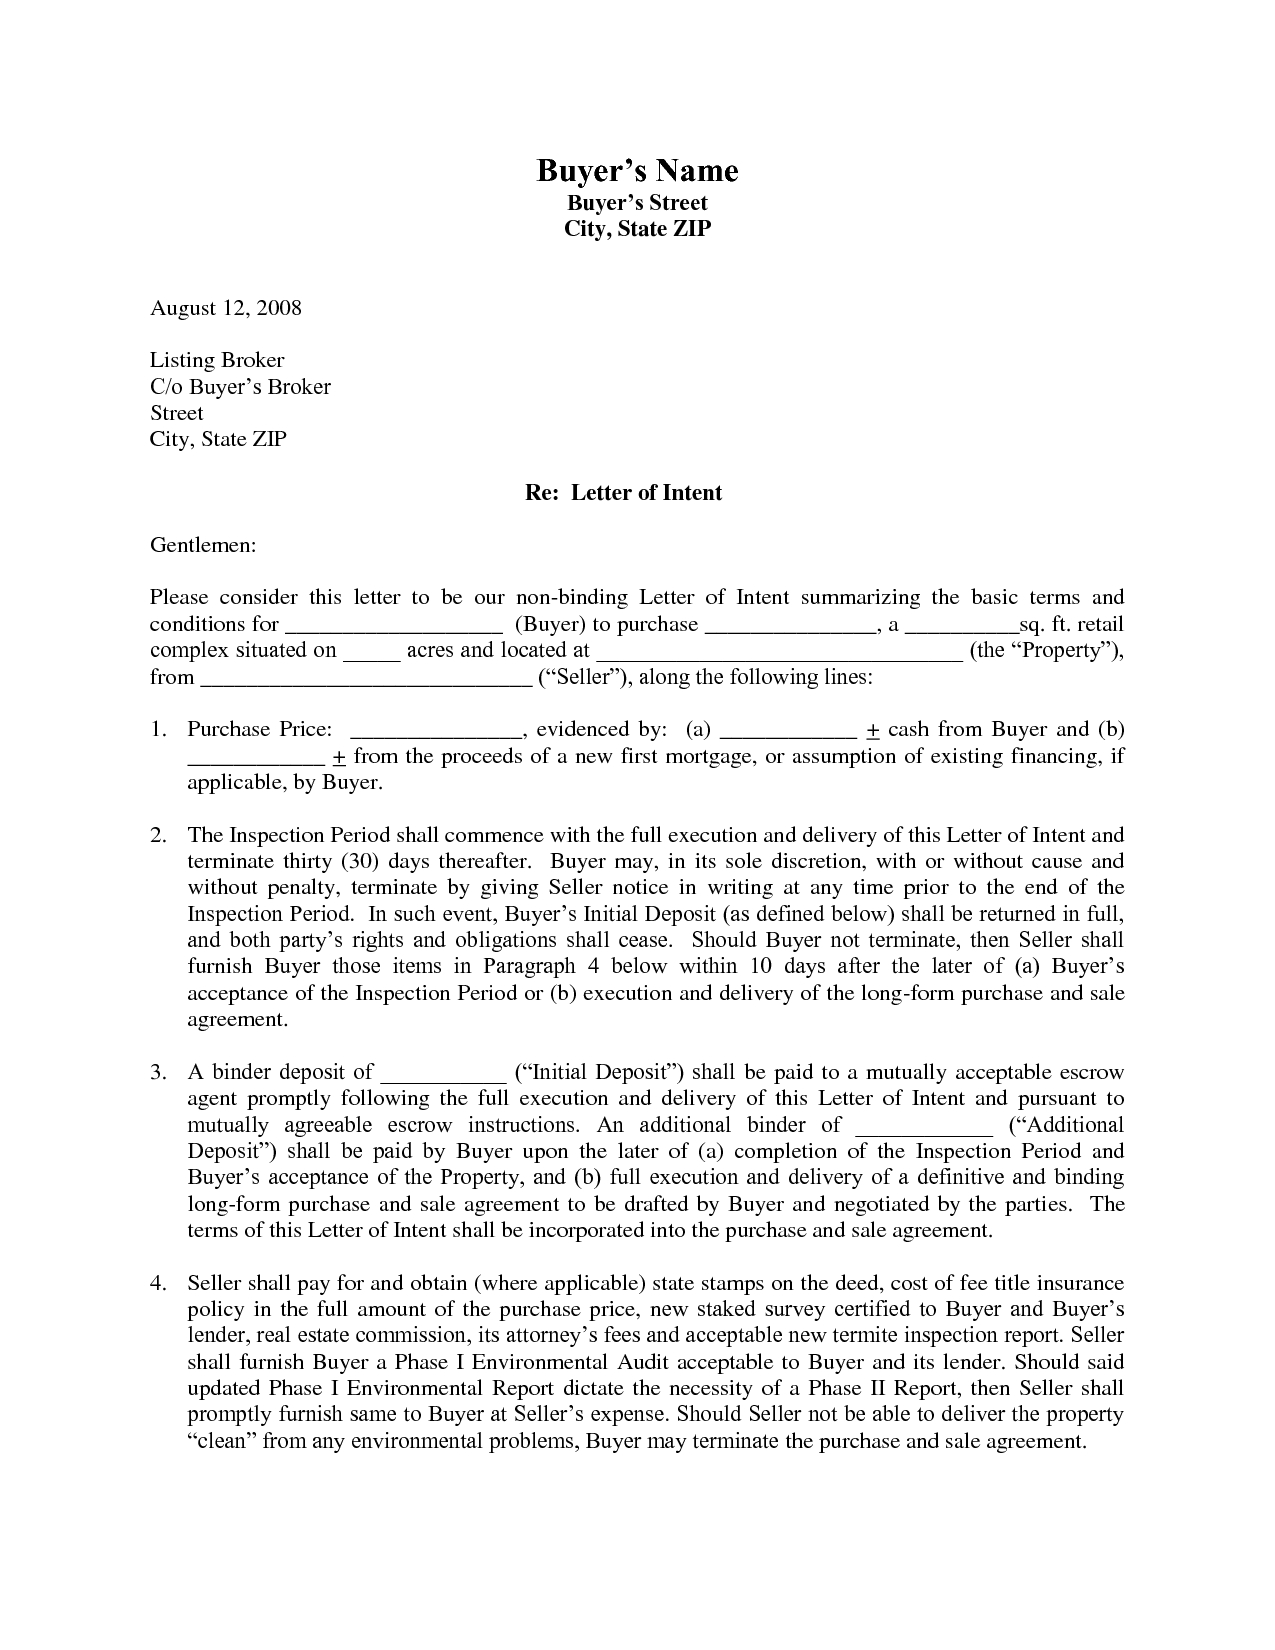 Commercial Real Estate Lease Letter Of Intent Template - Templatemercial Real Estate Letter Intent to Lease Sample